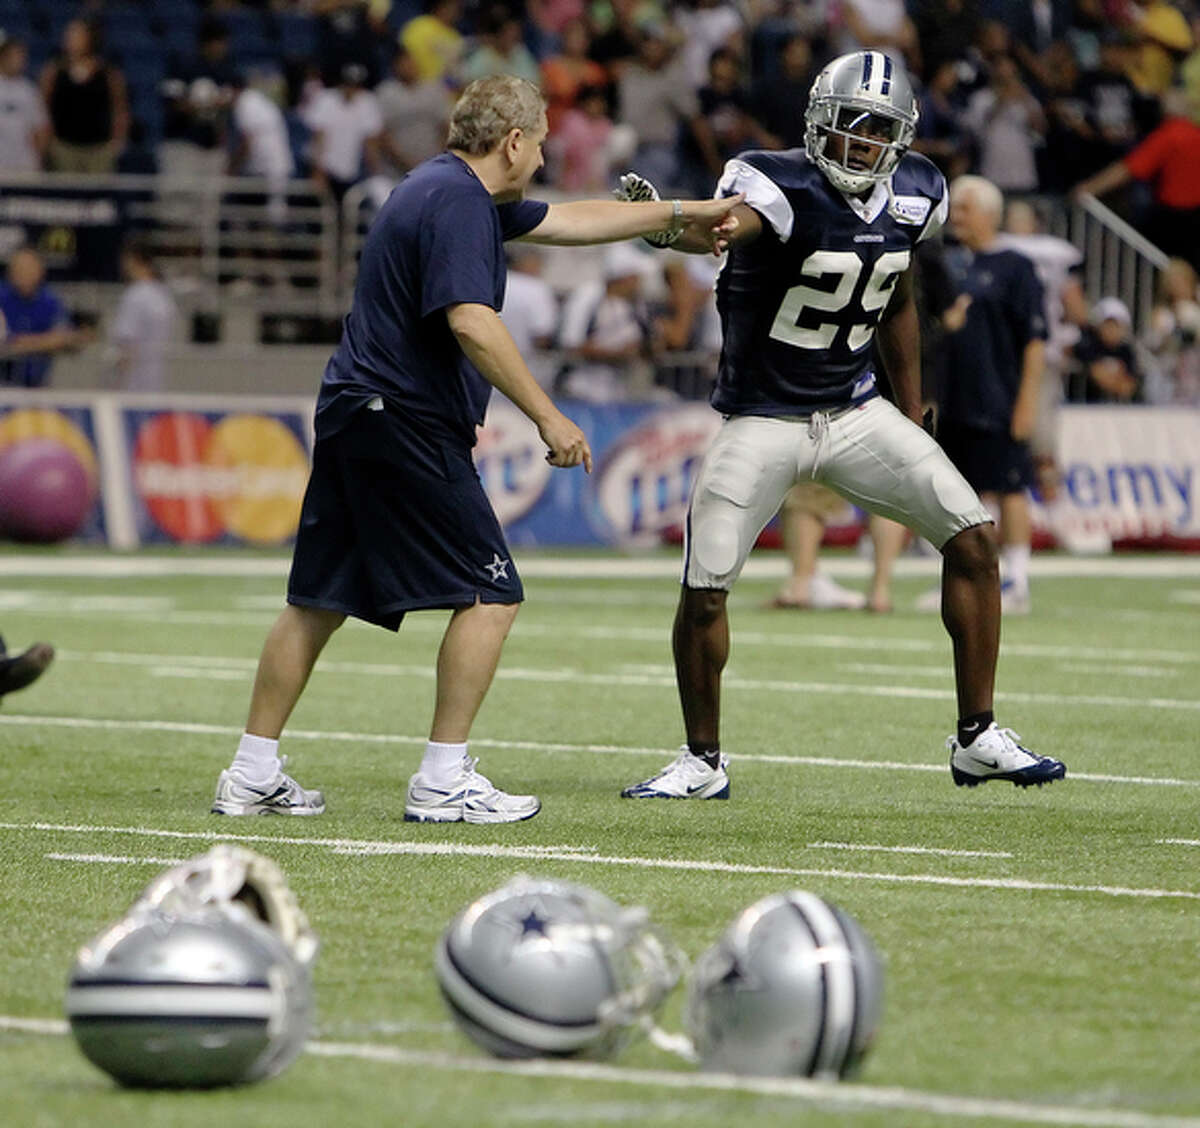 UTSA's Teddy Williams (29) gets an after-practice tutoring session with secondary coach Dave Campo at the Dallas Cowboys training camp at the Alamodome Thursday